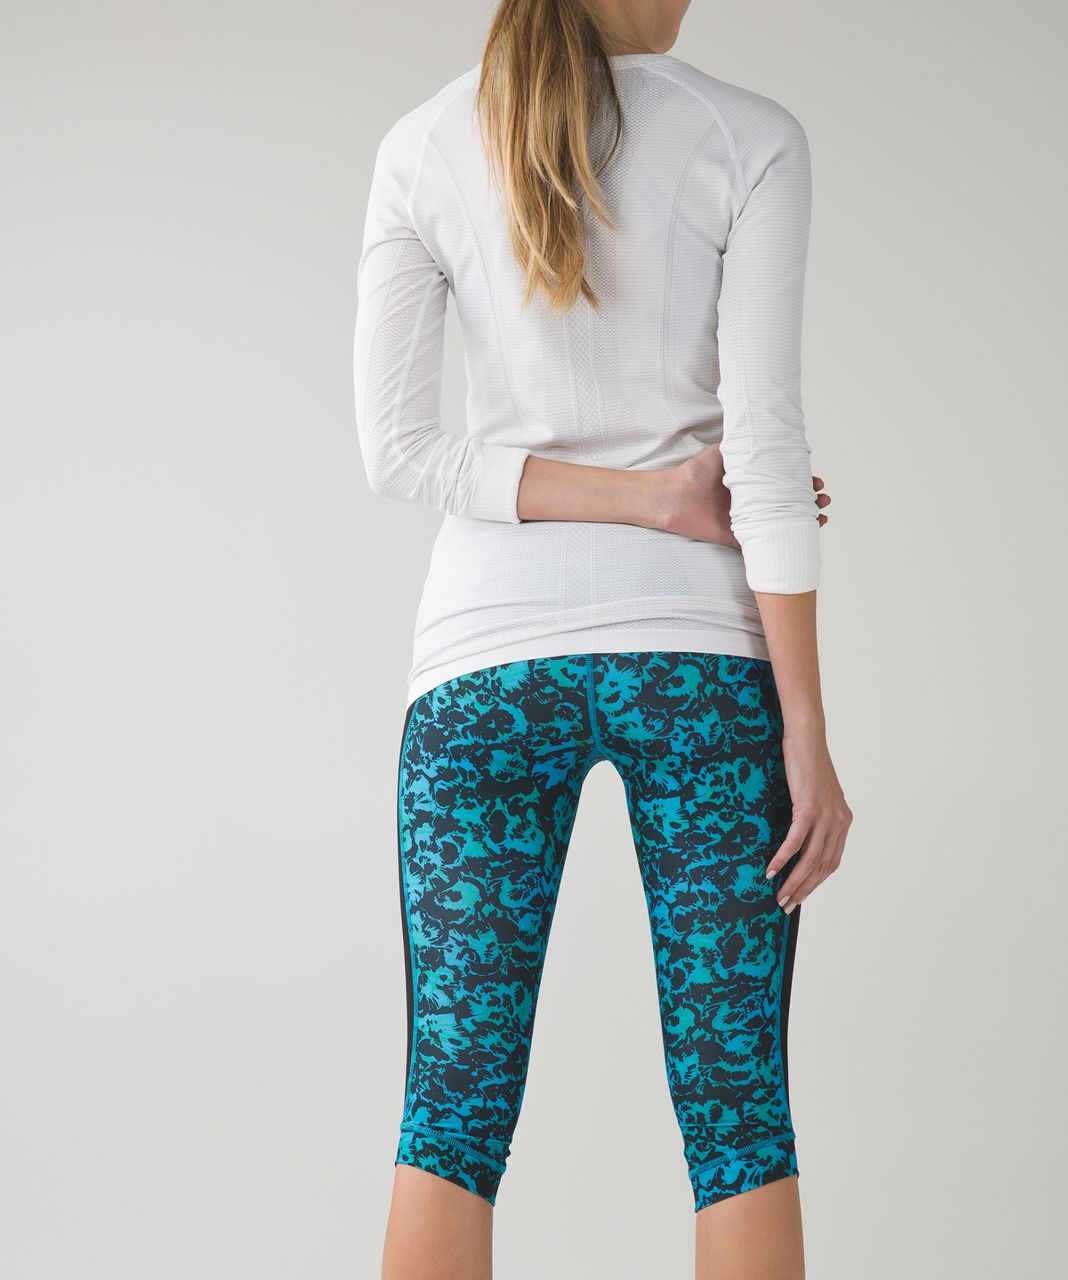 Lululemon Stop At Nothing Crop *Full-On Luxtreme - Fleur Sombre Kayak Blue Dragonfly / Black